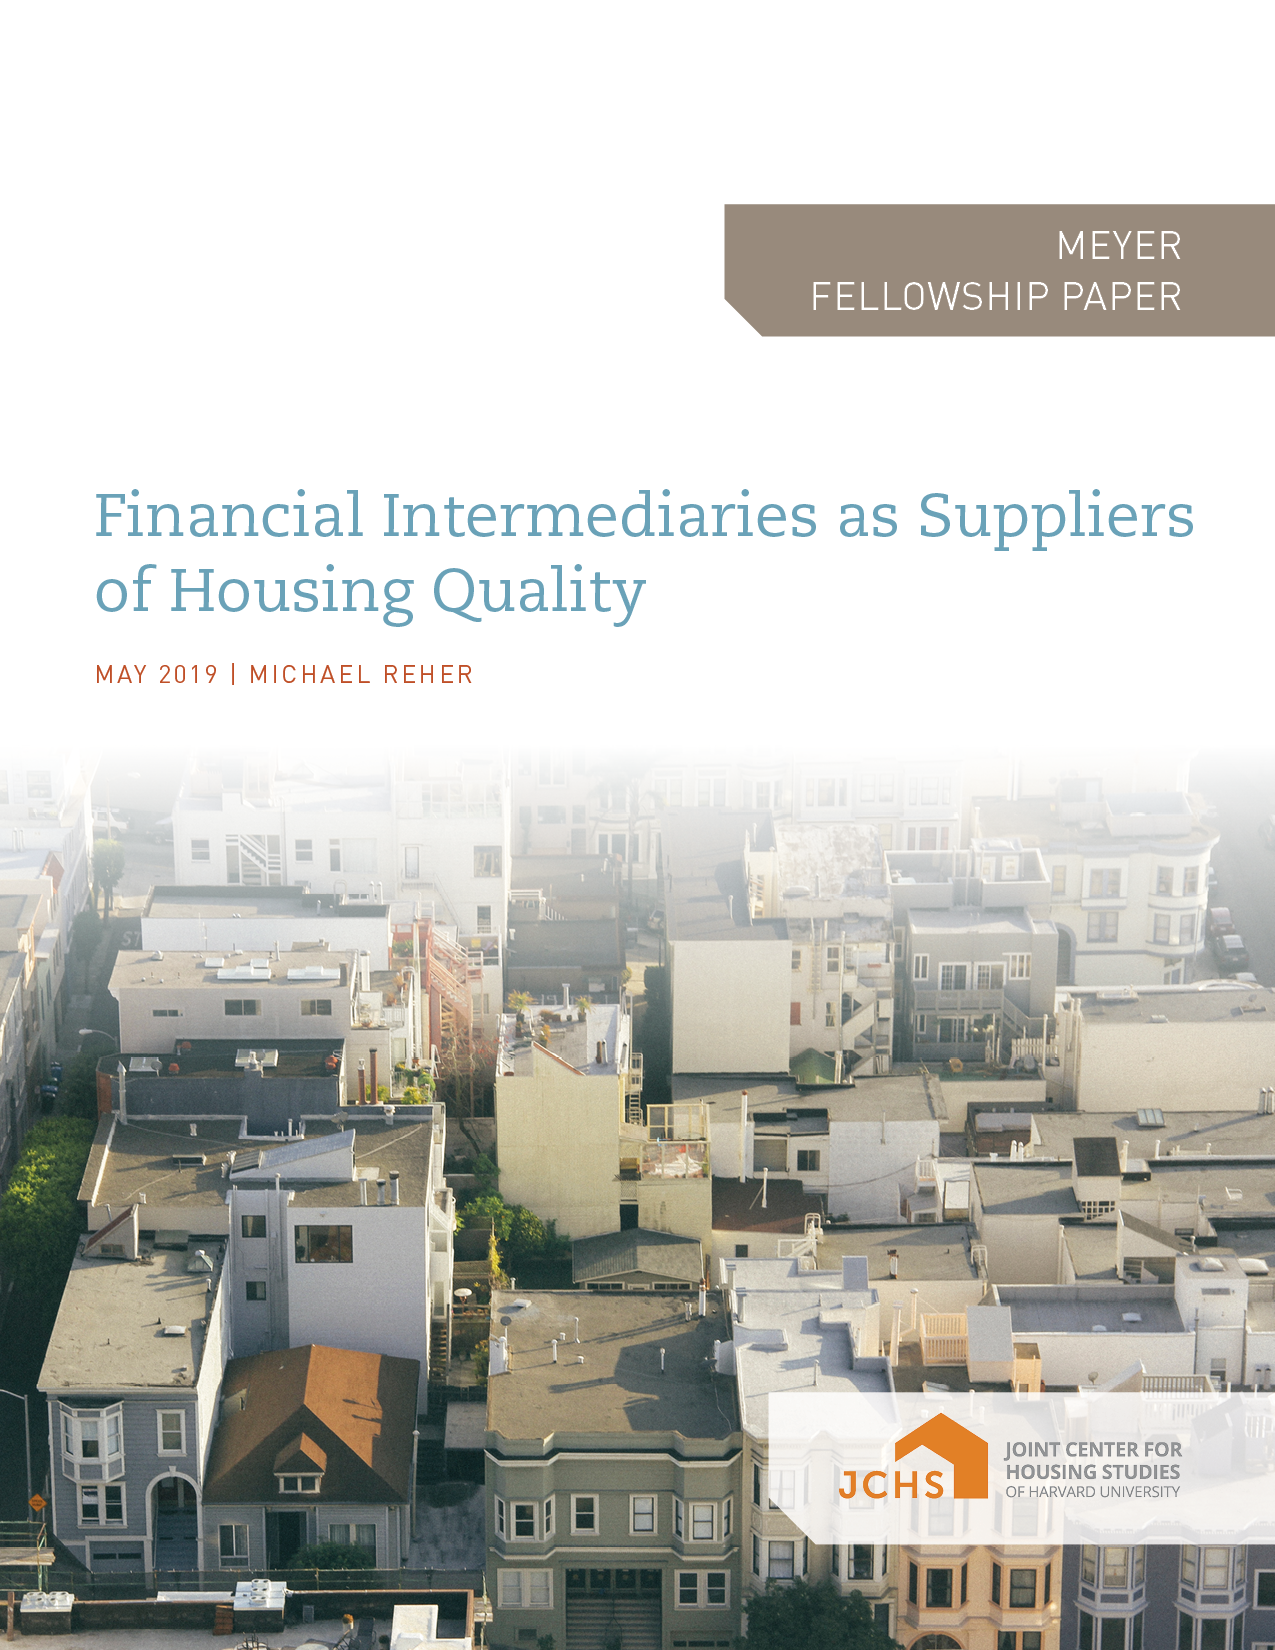 Financial Intermediaries as Suppliers of Housing Quality